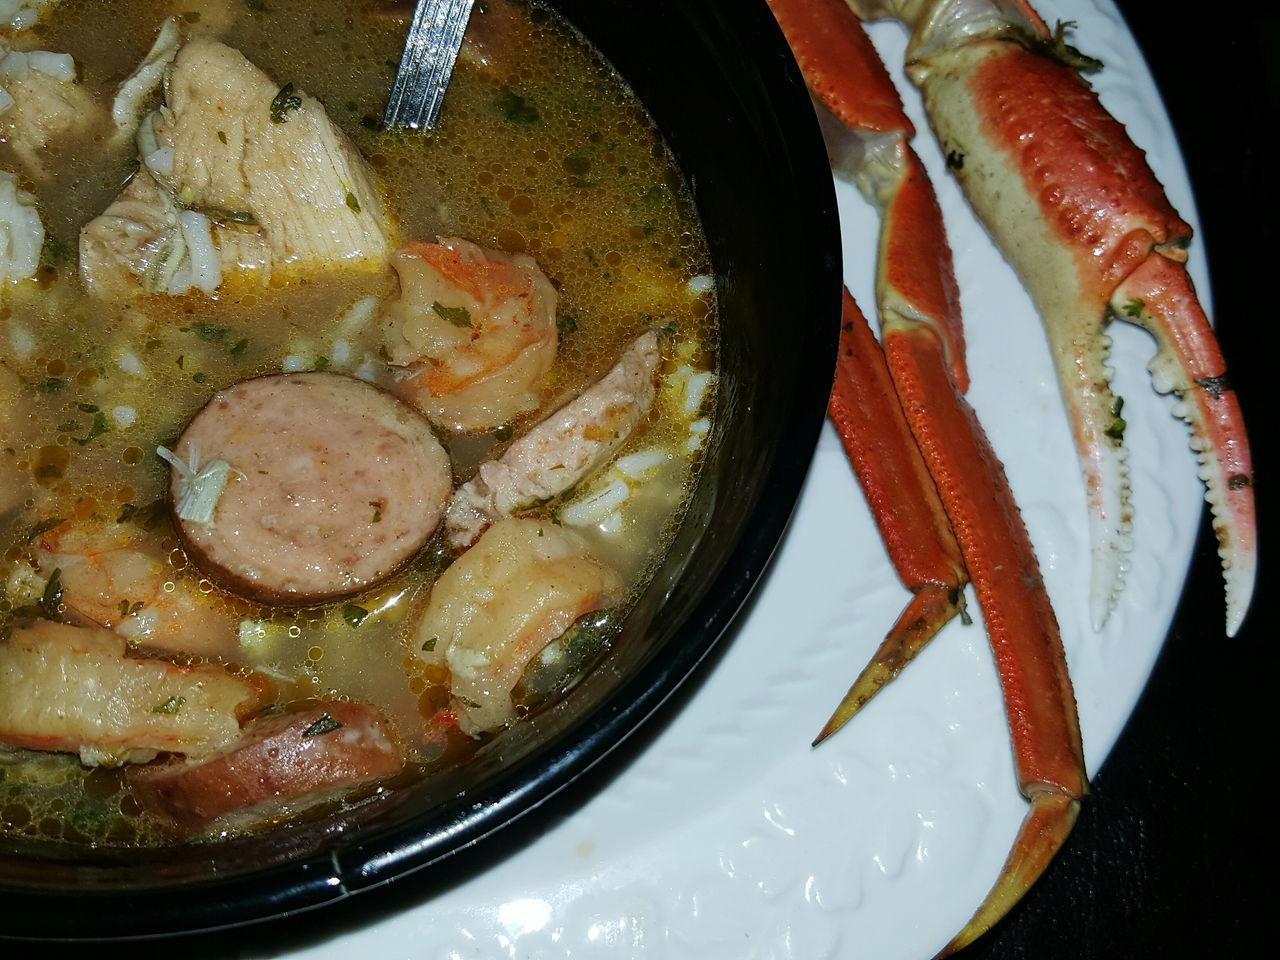 Food for the Soul. Authentic Cajun Soulfood Seafood Food And Drink Shrimp Crab Legs Gumbo Moms Cooking Delicious Hot Food Cold Nights Food No People Bowl Freshness Healthy Eating Ready-to-eat Indoors  Close-up Day